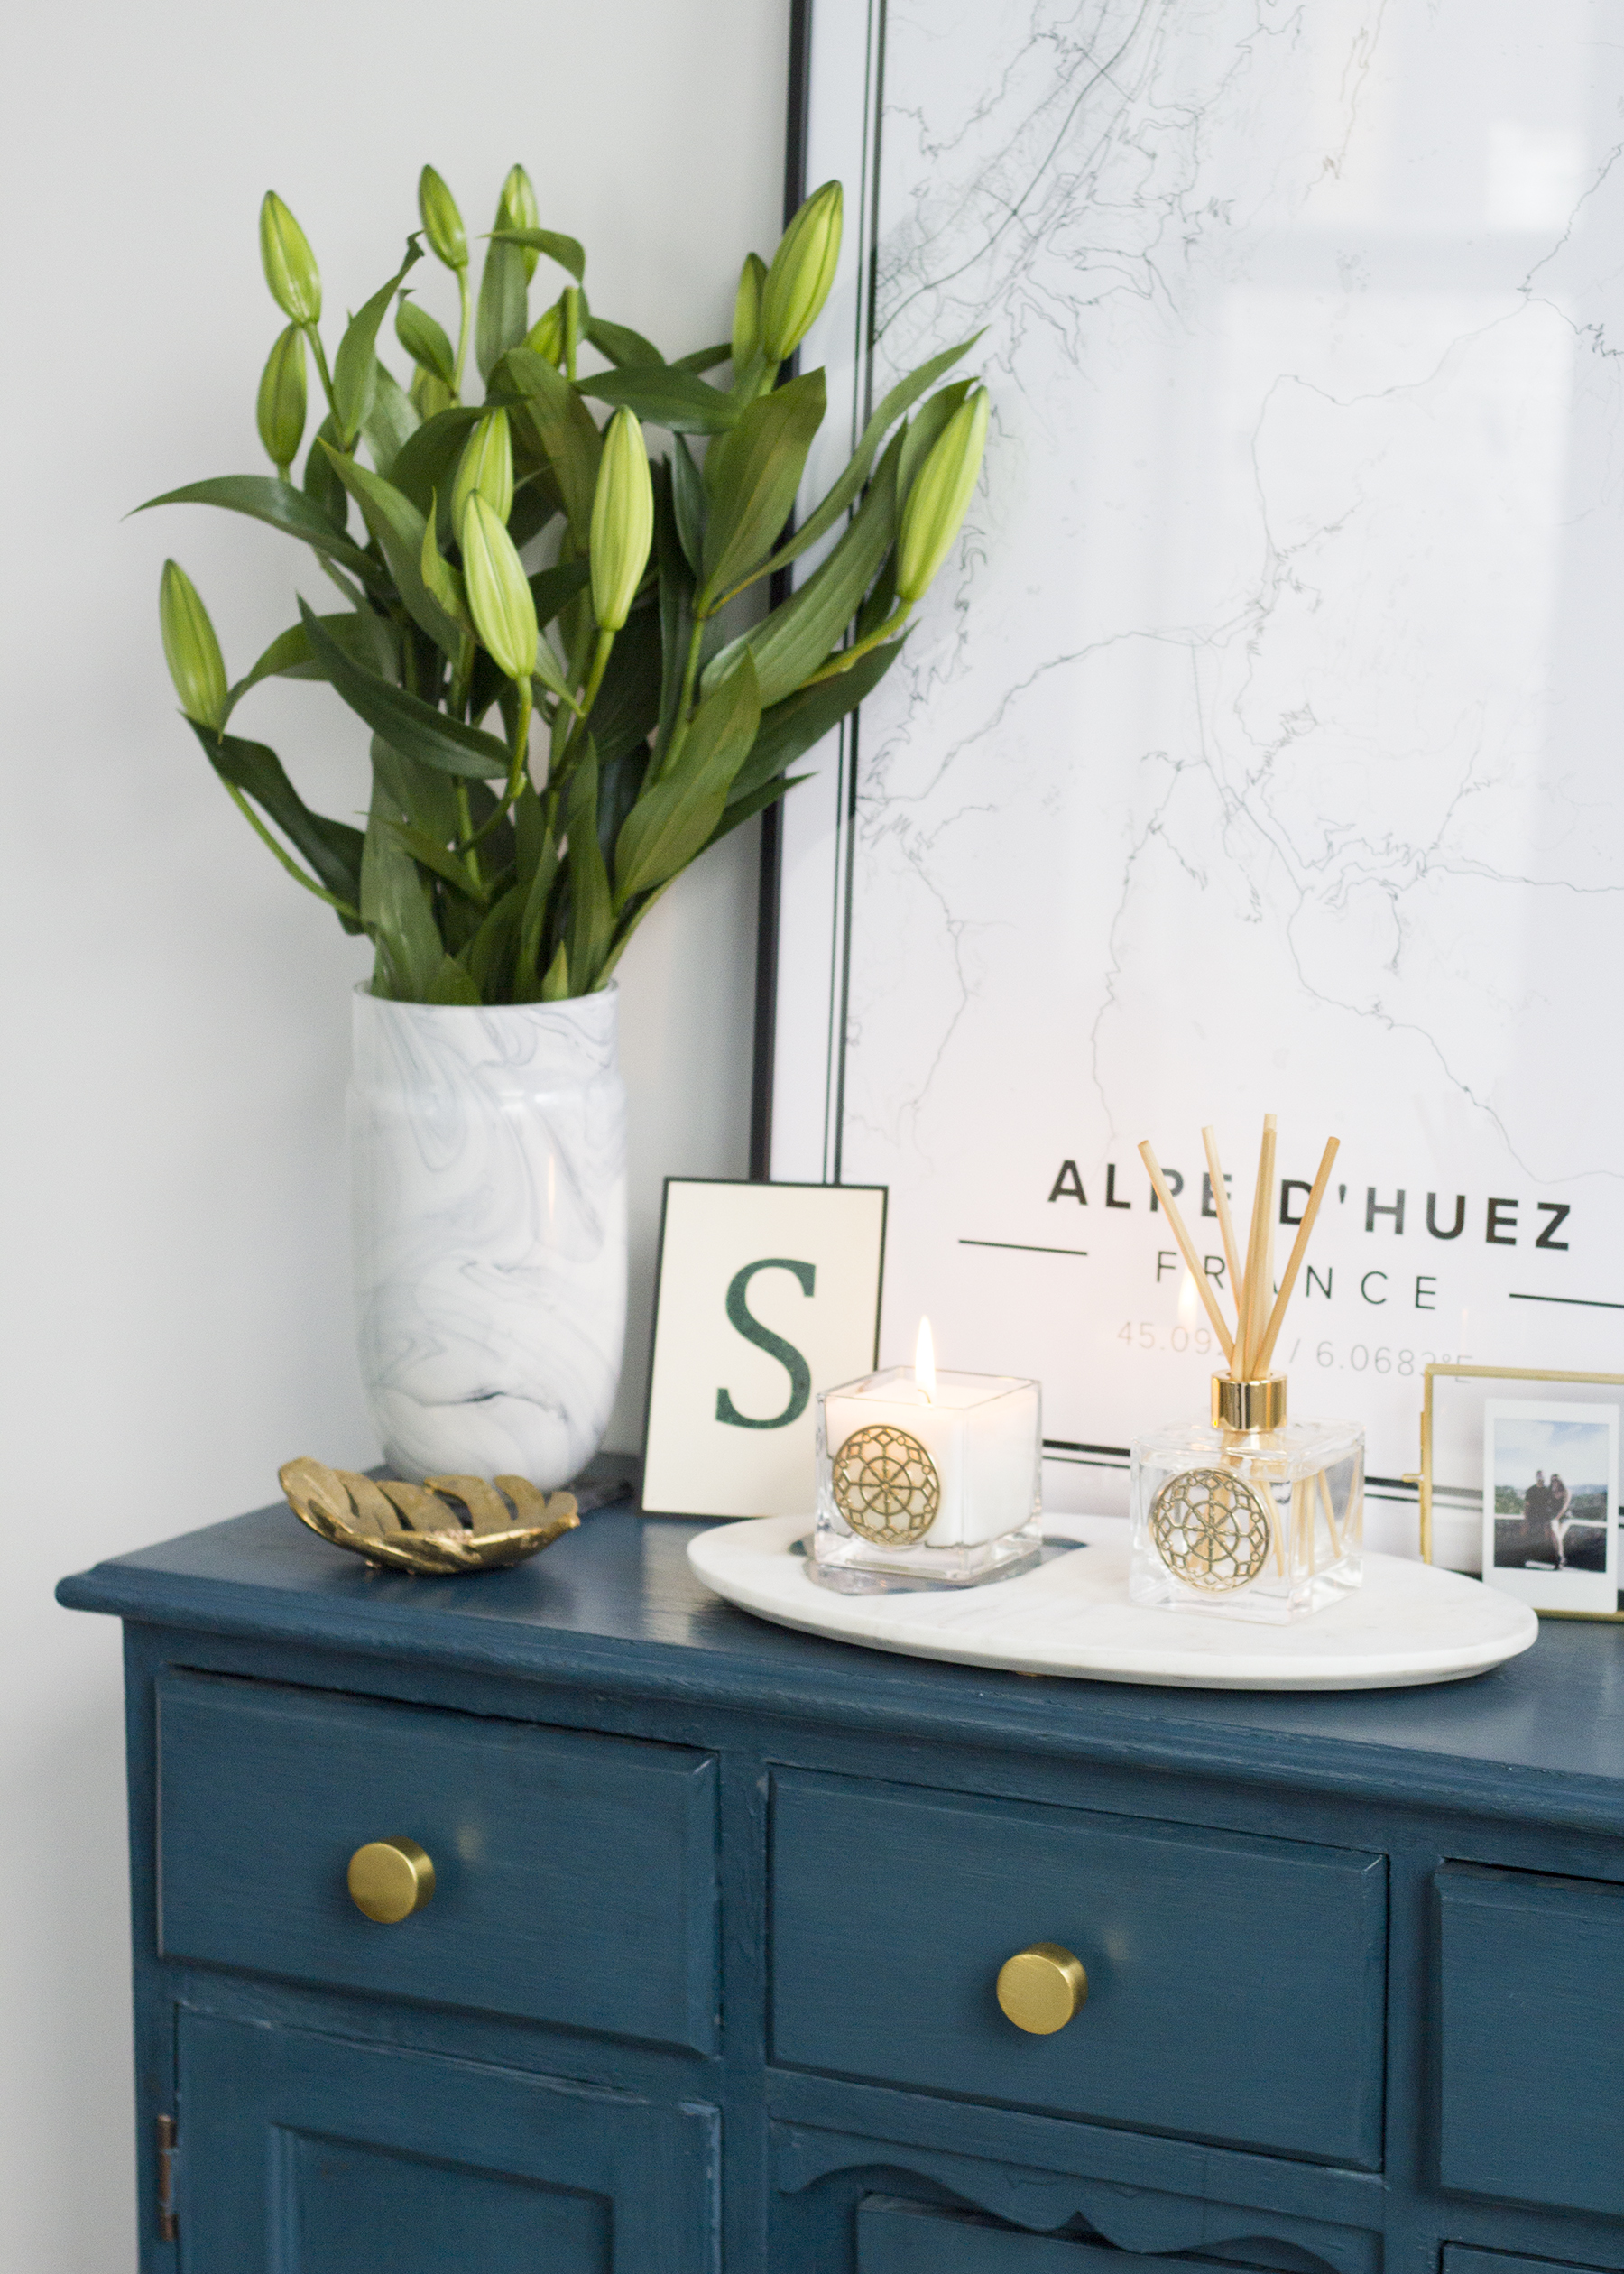 DIY upcycled sideboard styling